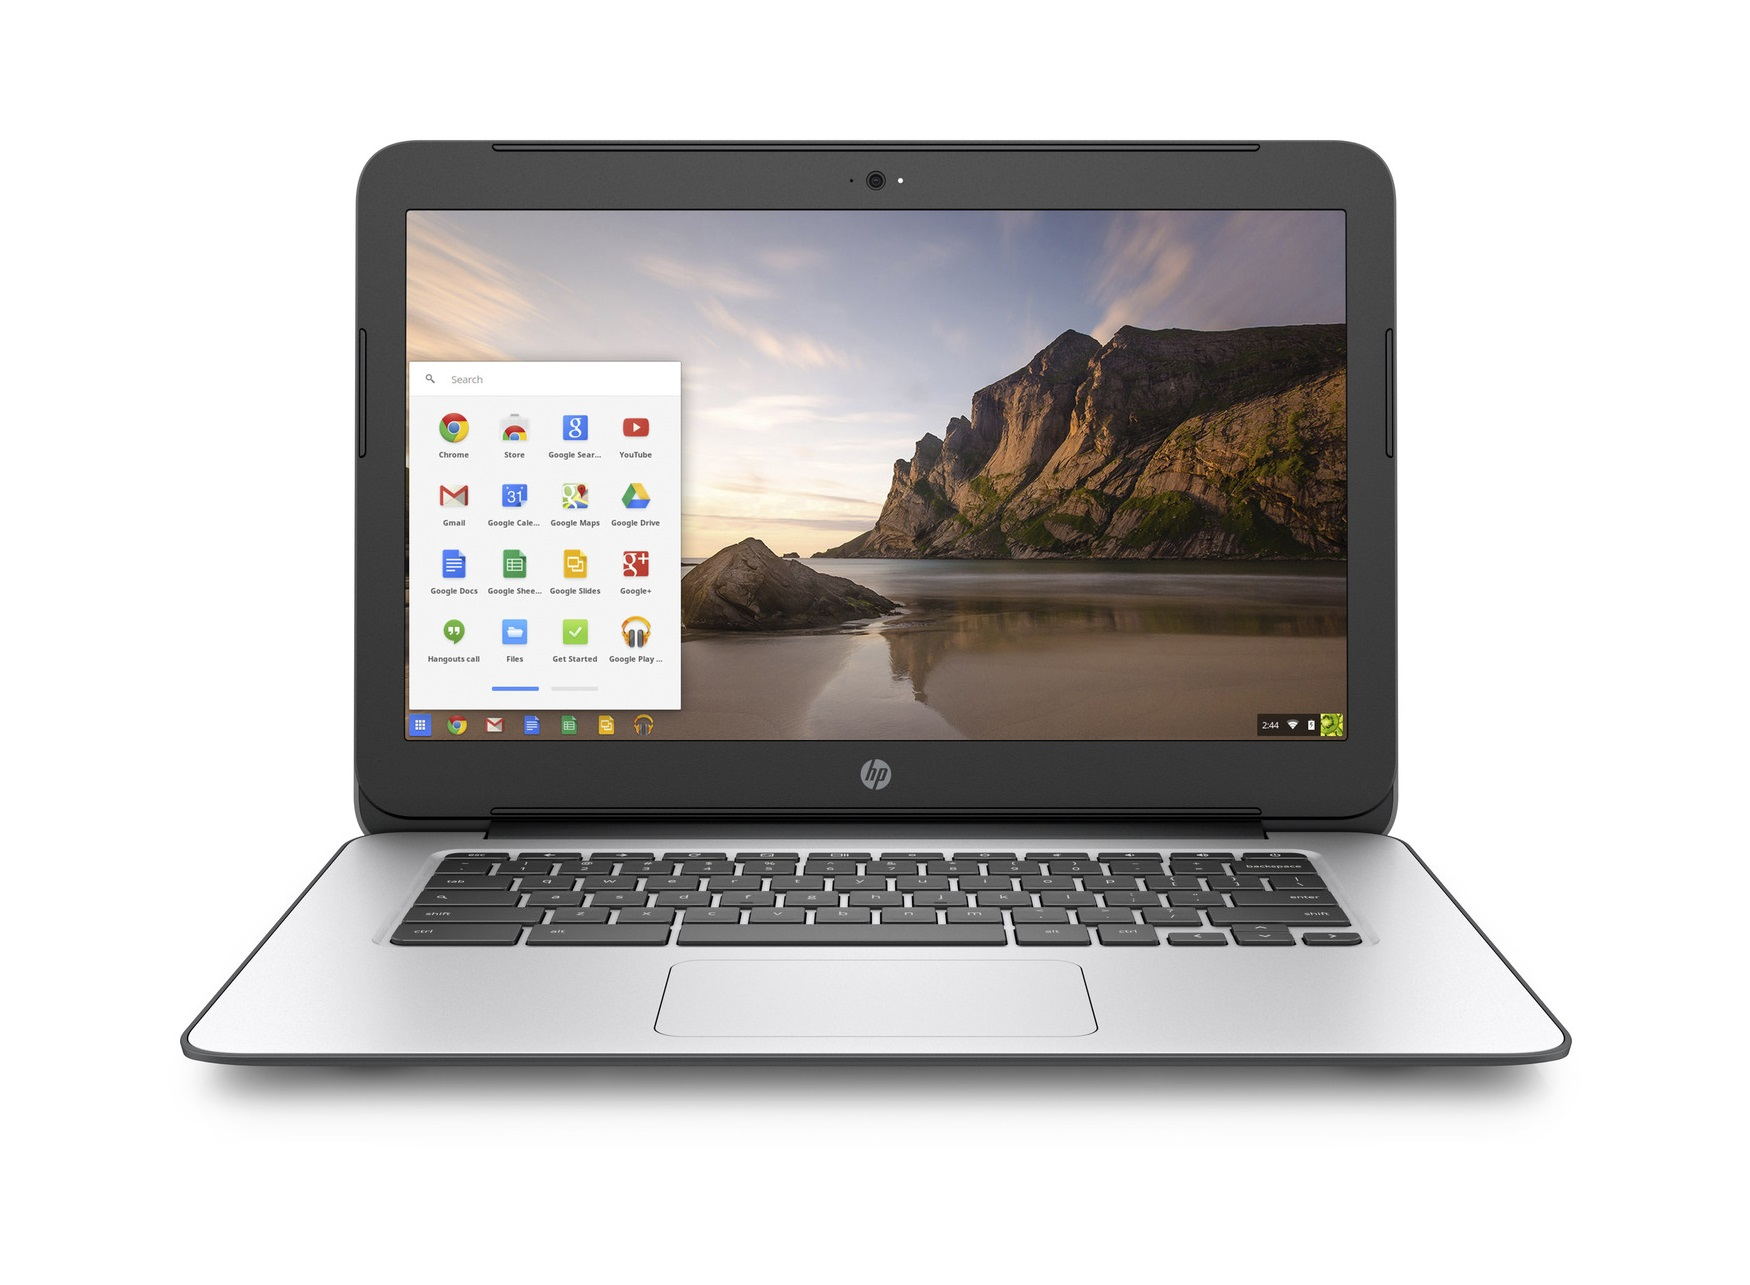 Acer's Chromebook 11 brings USB-C charging to entry-level laptops